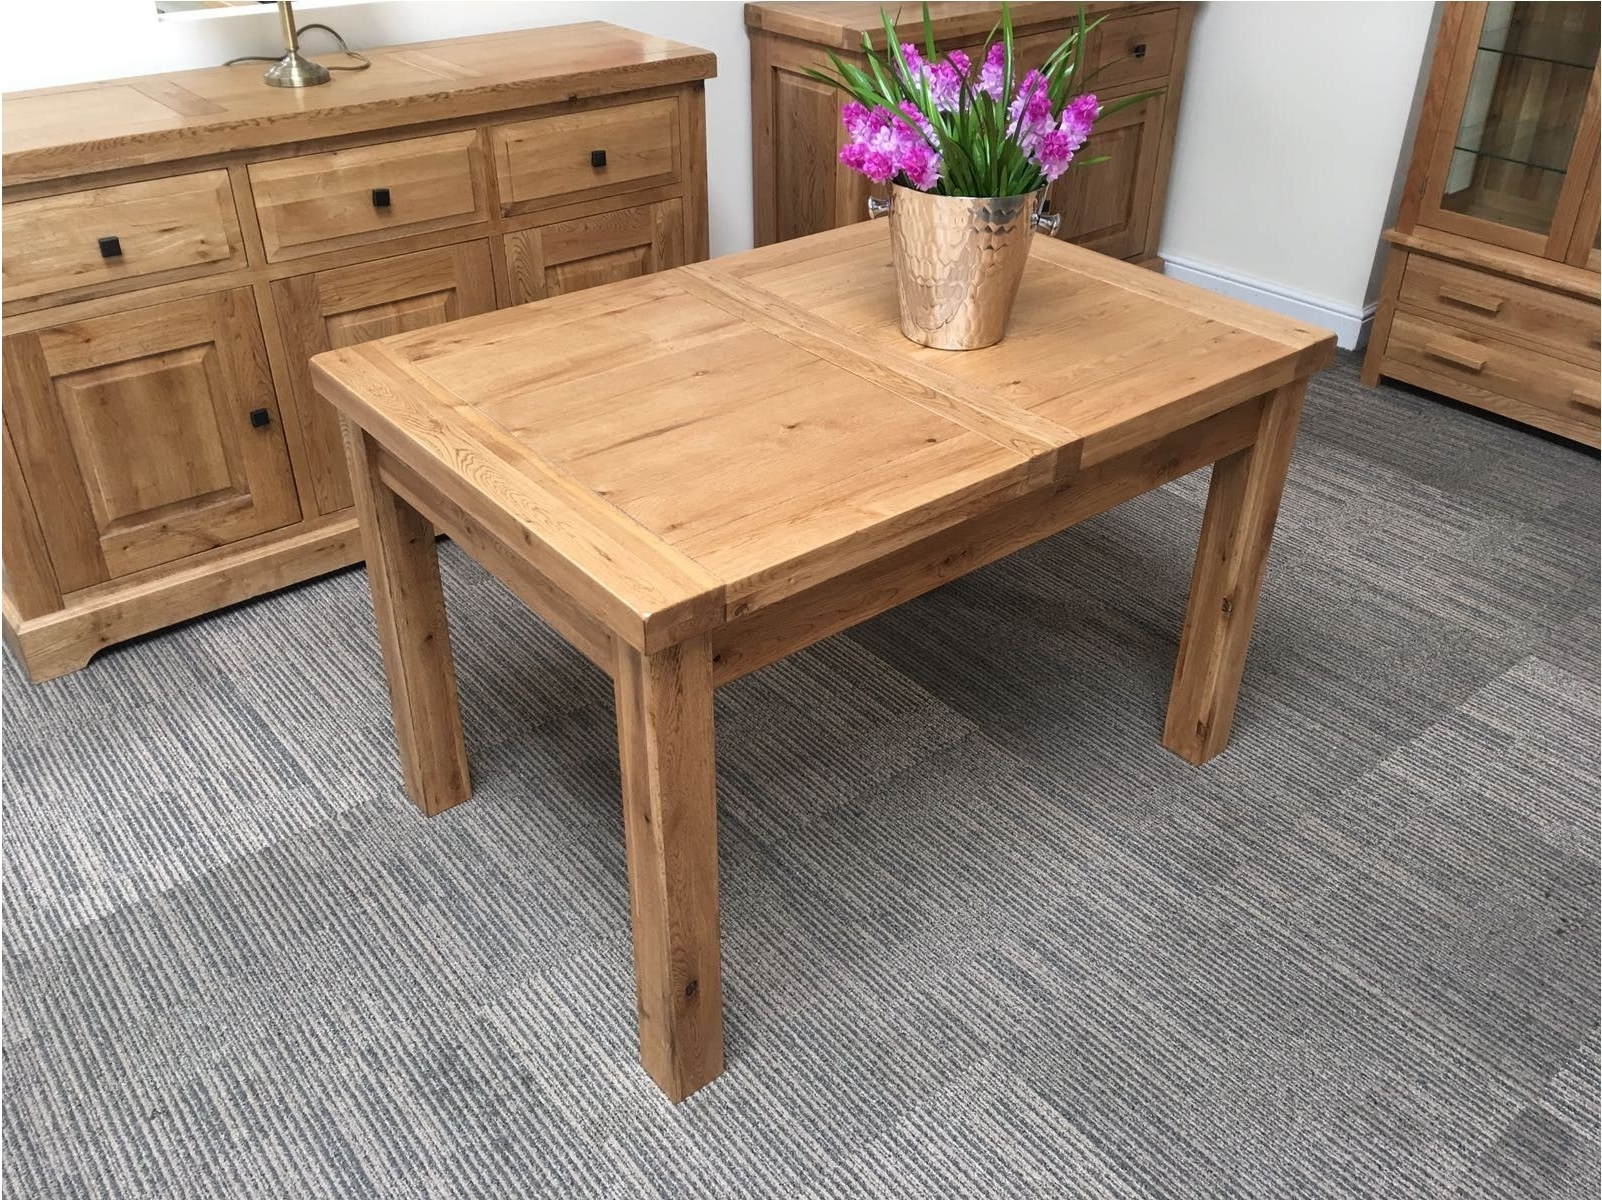 Oak Extending Dining Tables Sets Intended For Famous Nice Oxford Solid Oak Extending Dining Table Oak Furniture – Keller (View 22 of 25)